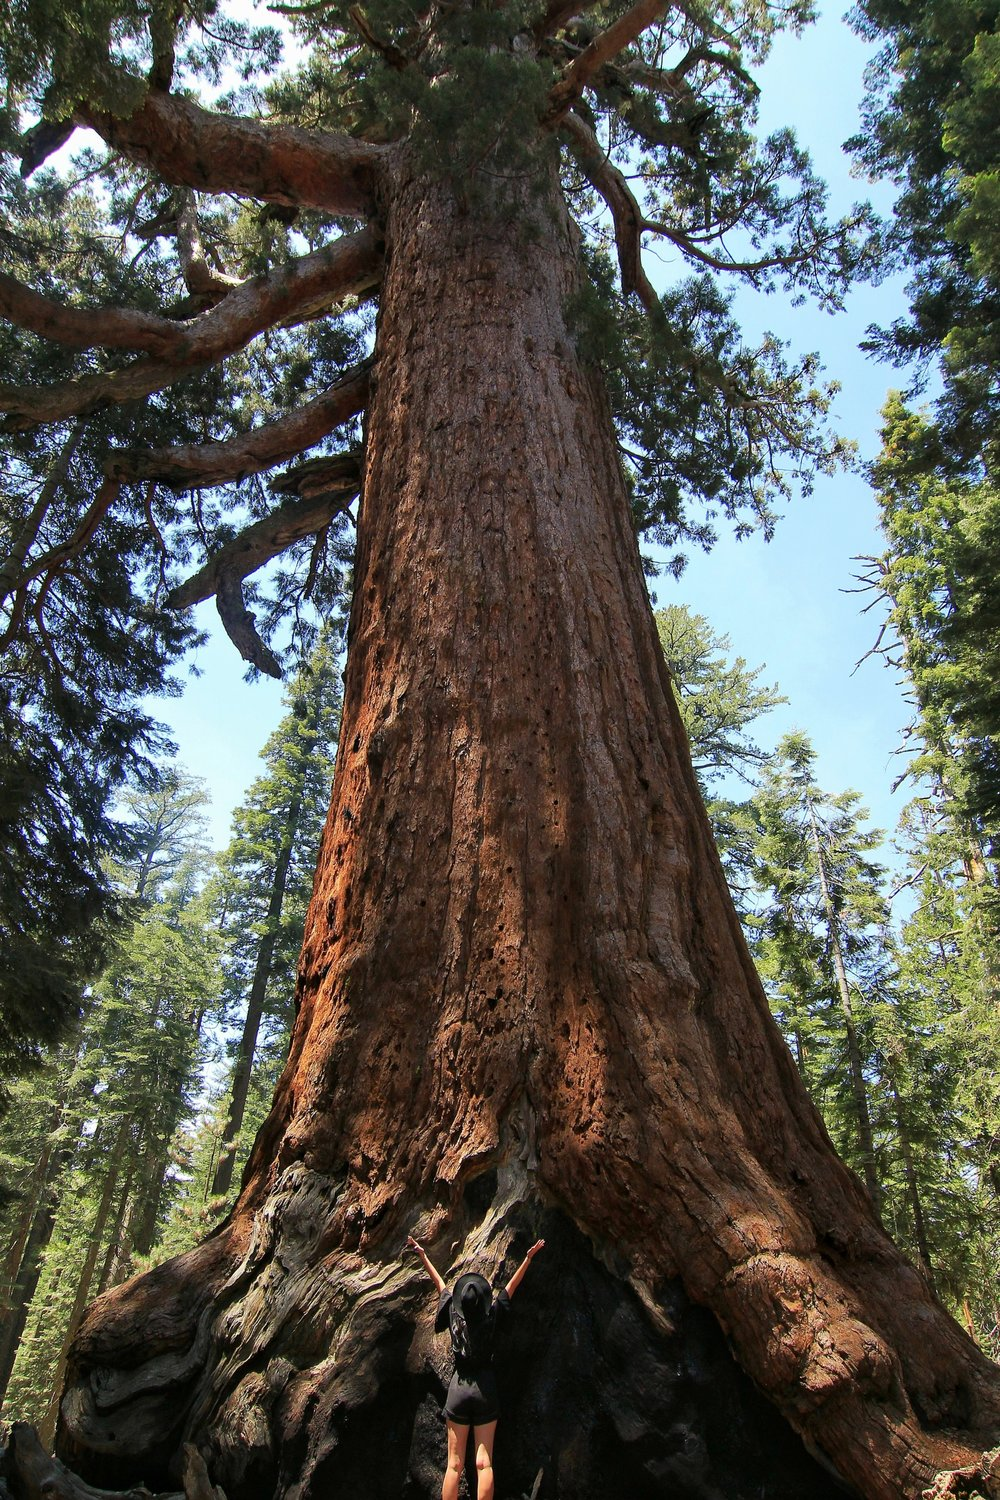 The Giant Sequoia named Grizzly Giant is between probably 1900– 2400 years  old: the oldest tree in the grove. In 1932, park officials claimed it as the fifth largest (by volume) tree in the world, but other trees were subsequently found to be larger.